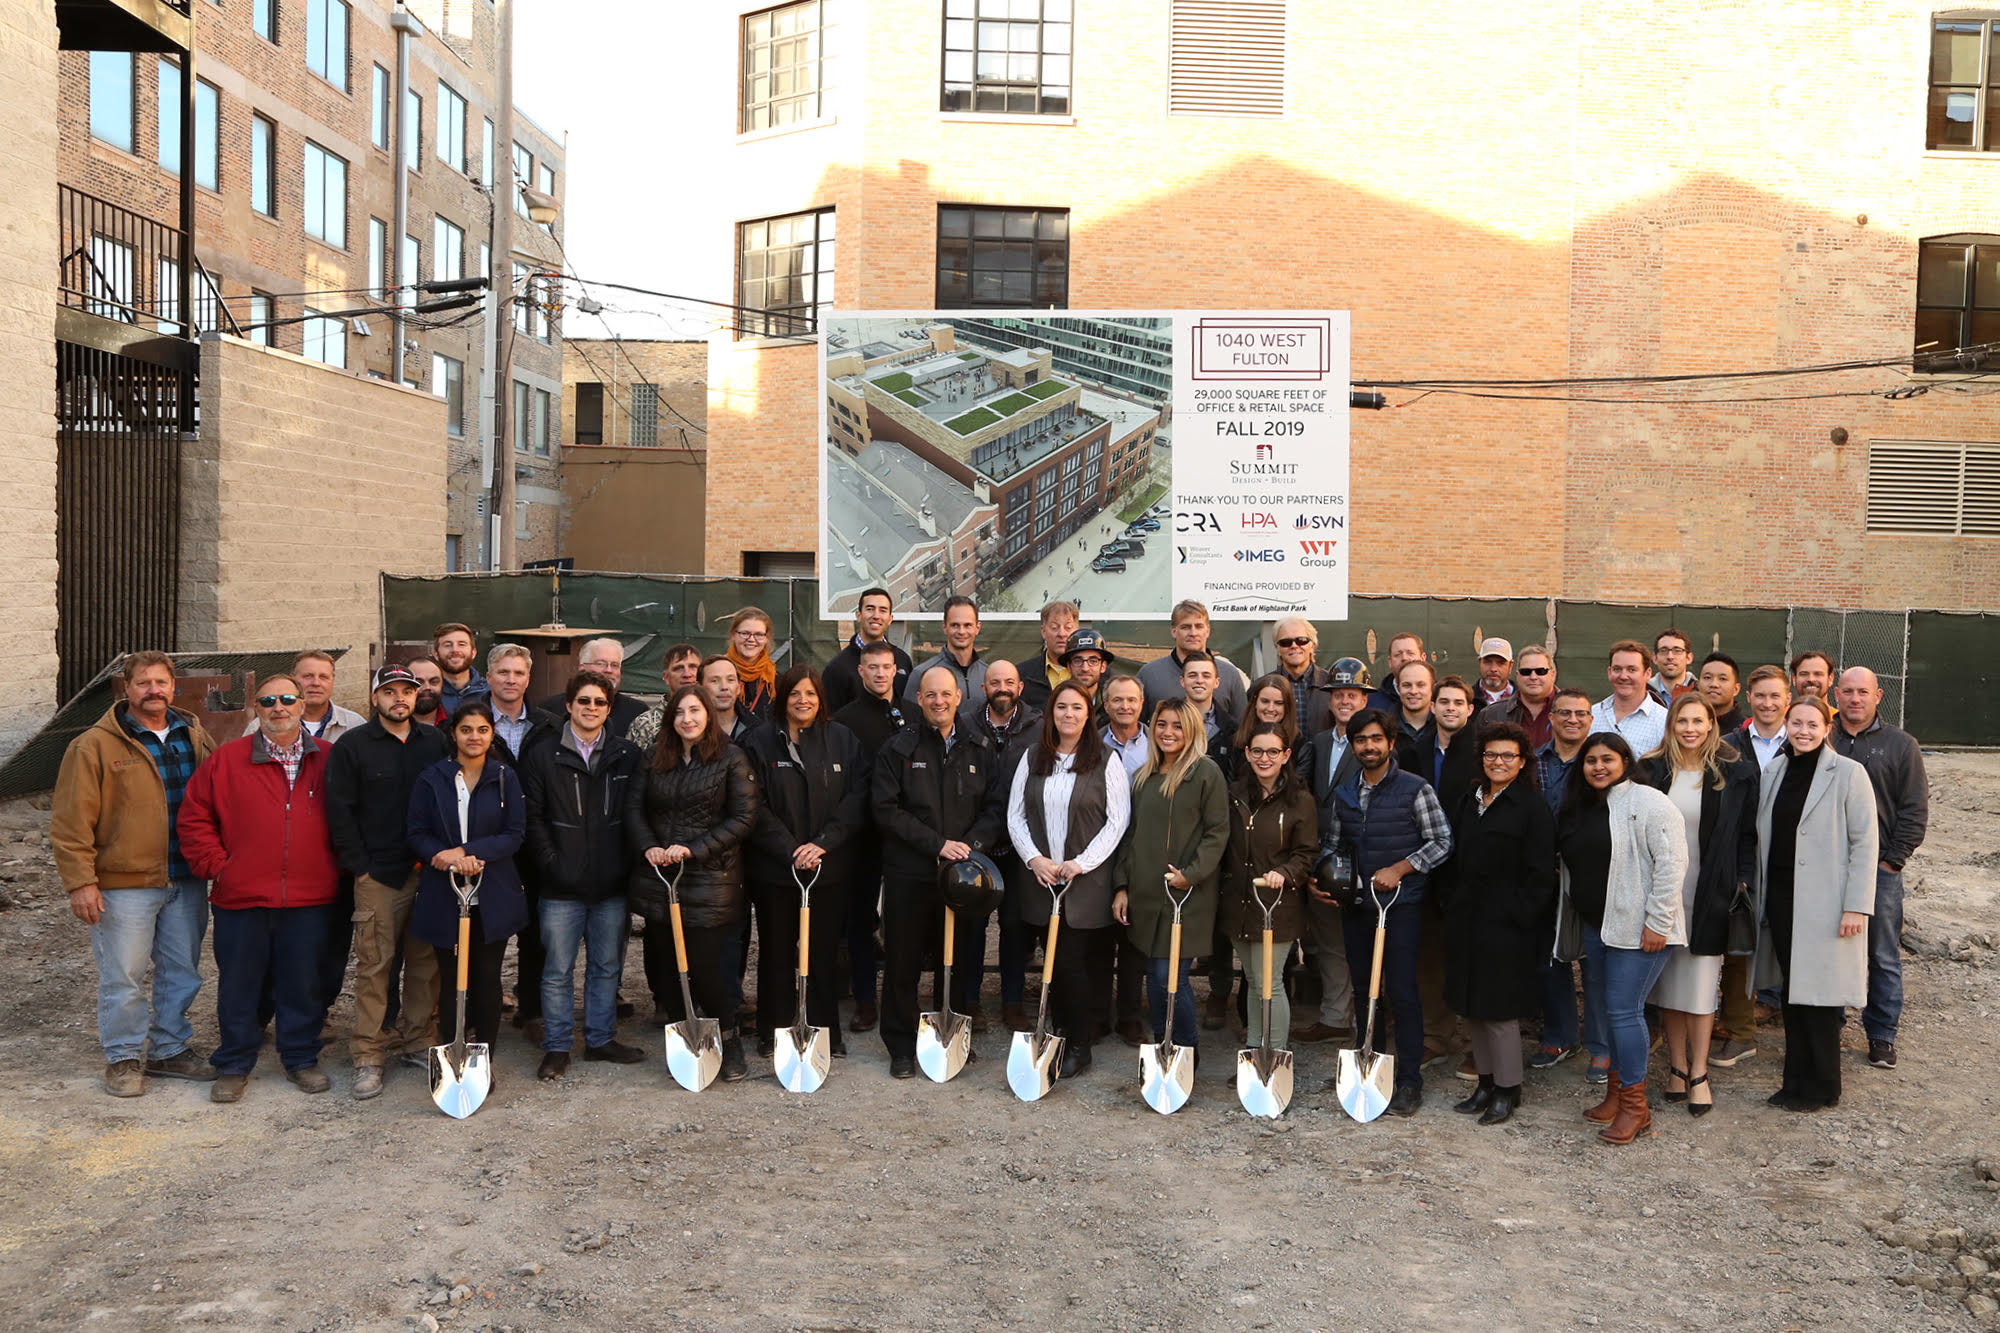 Groundbreaking Ceremony Marks Construction Start For New Office